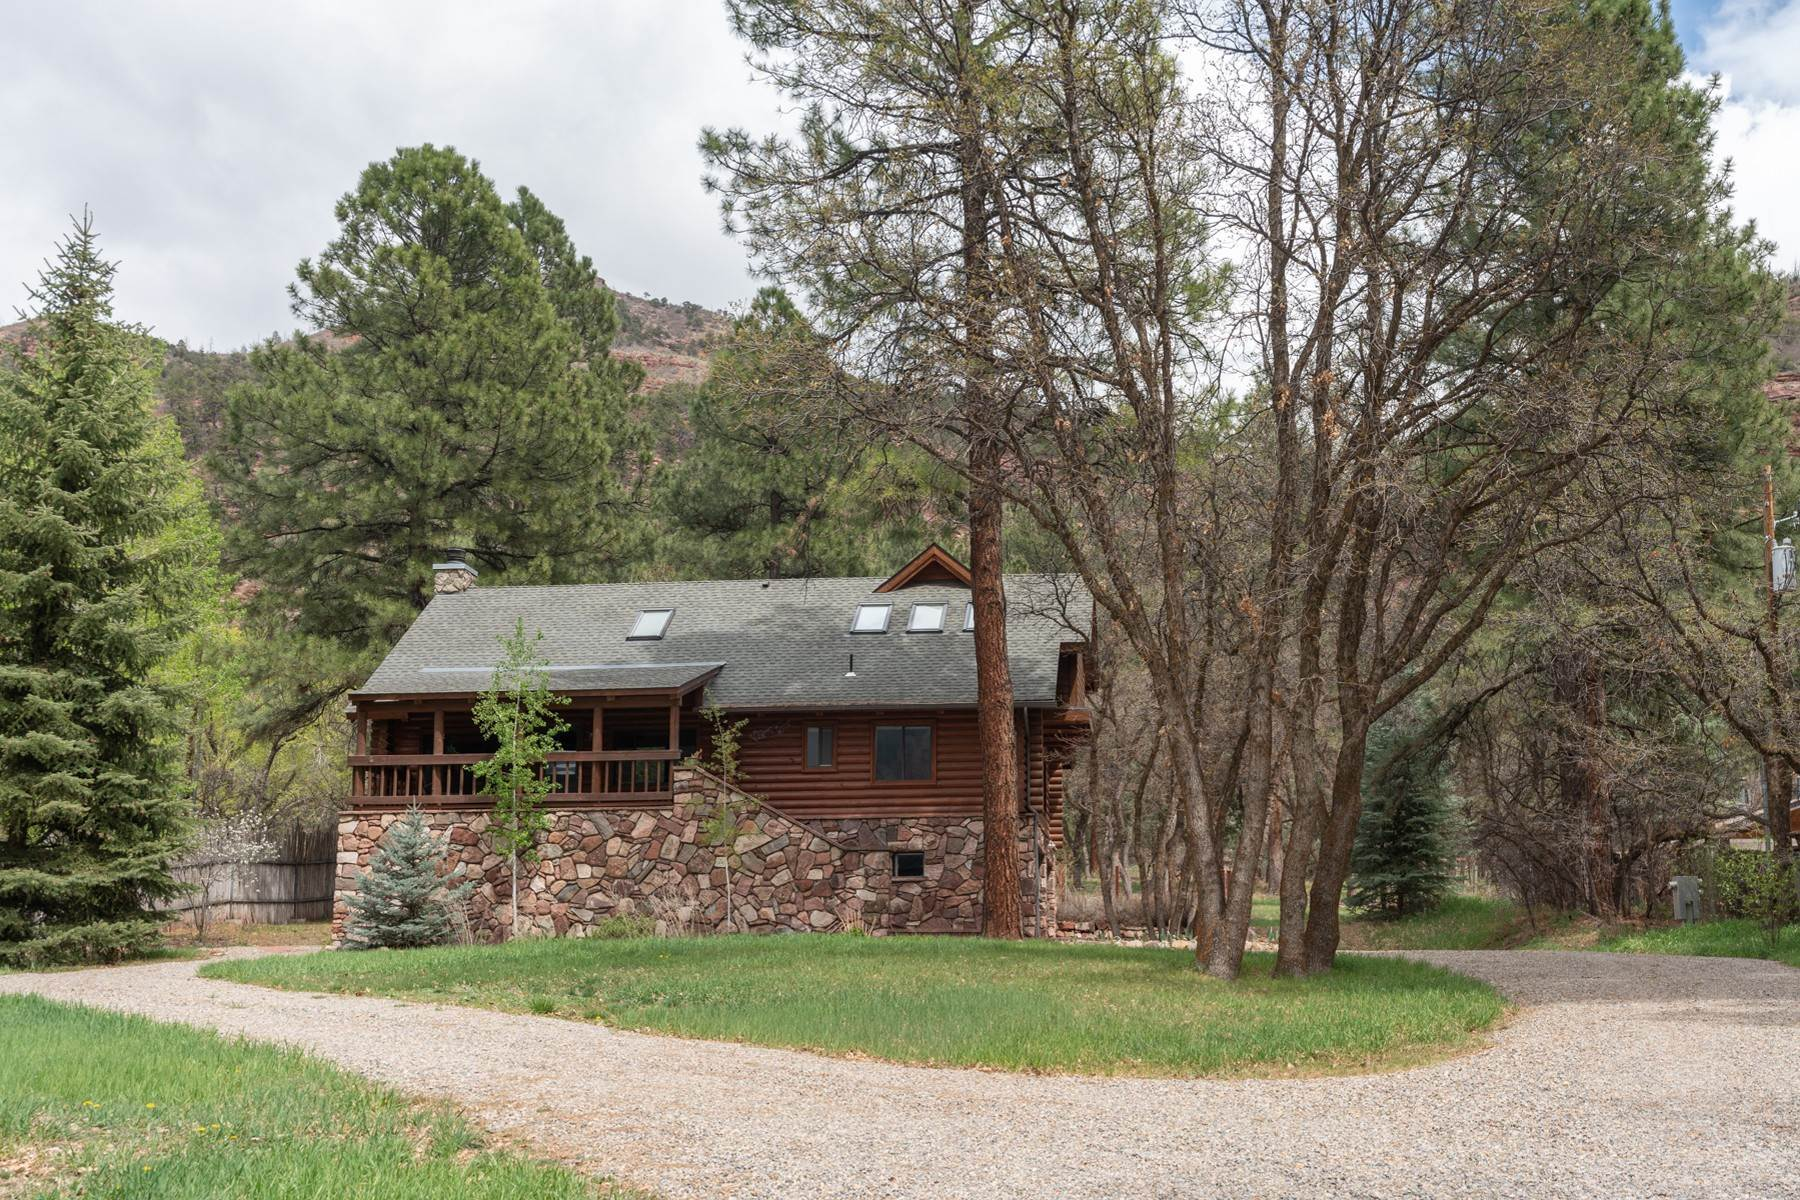 Single Family Homes for Sale at 5164 County Road 250 Durango, Colorado 81301 United States